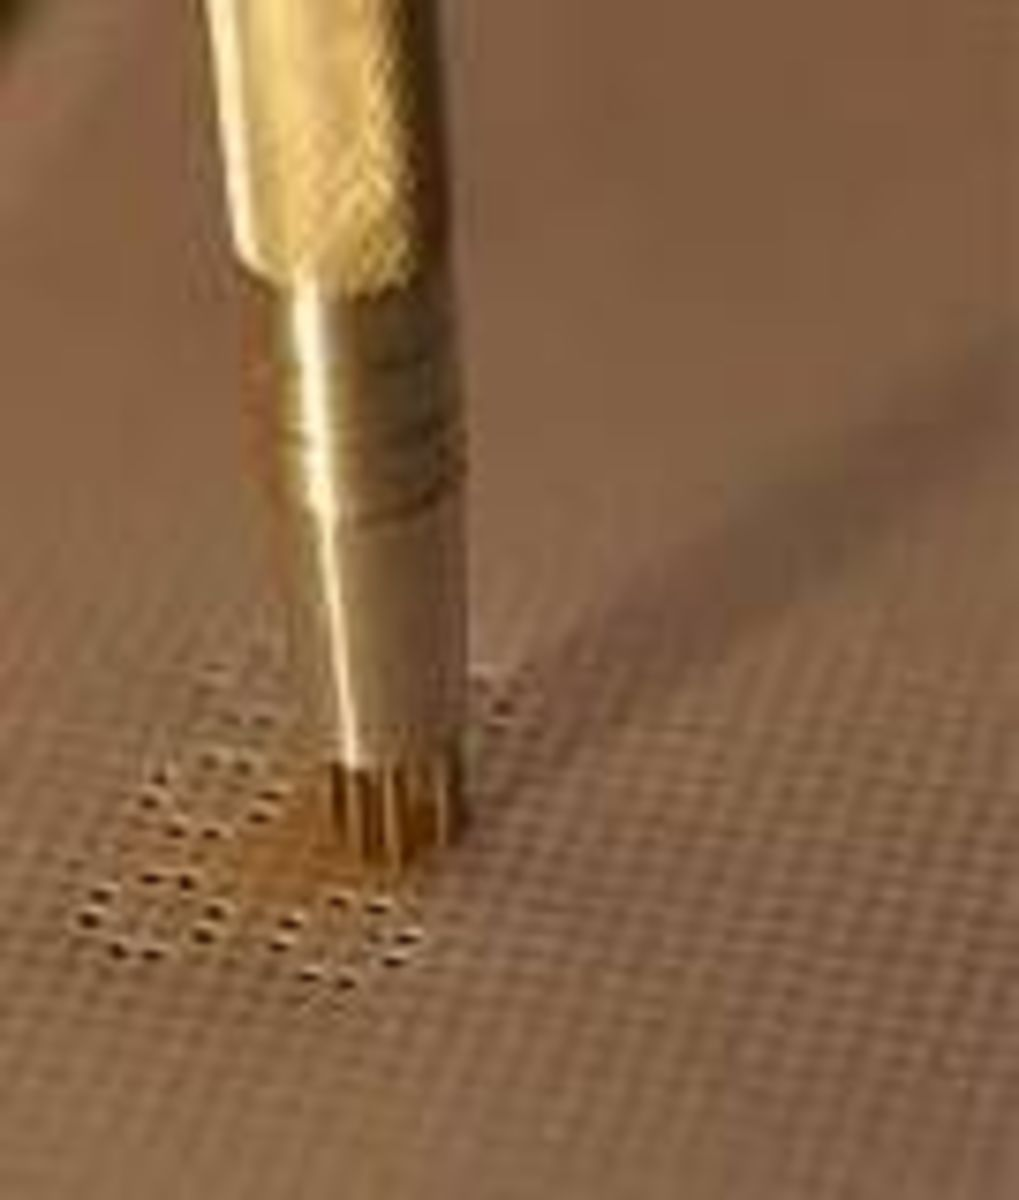 parchment perforating tools